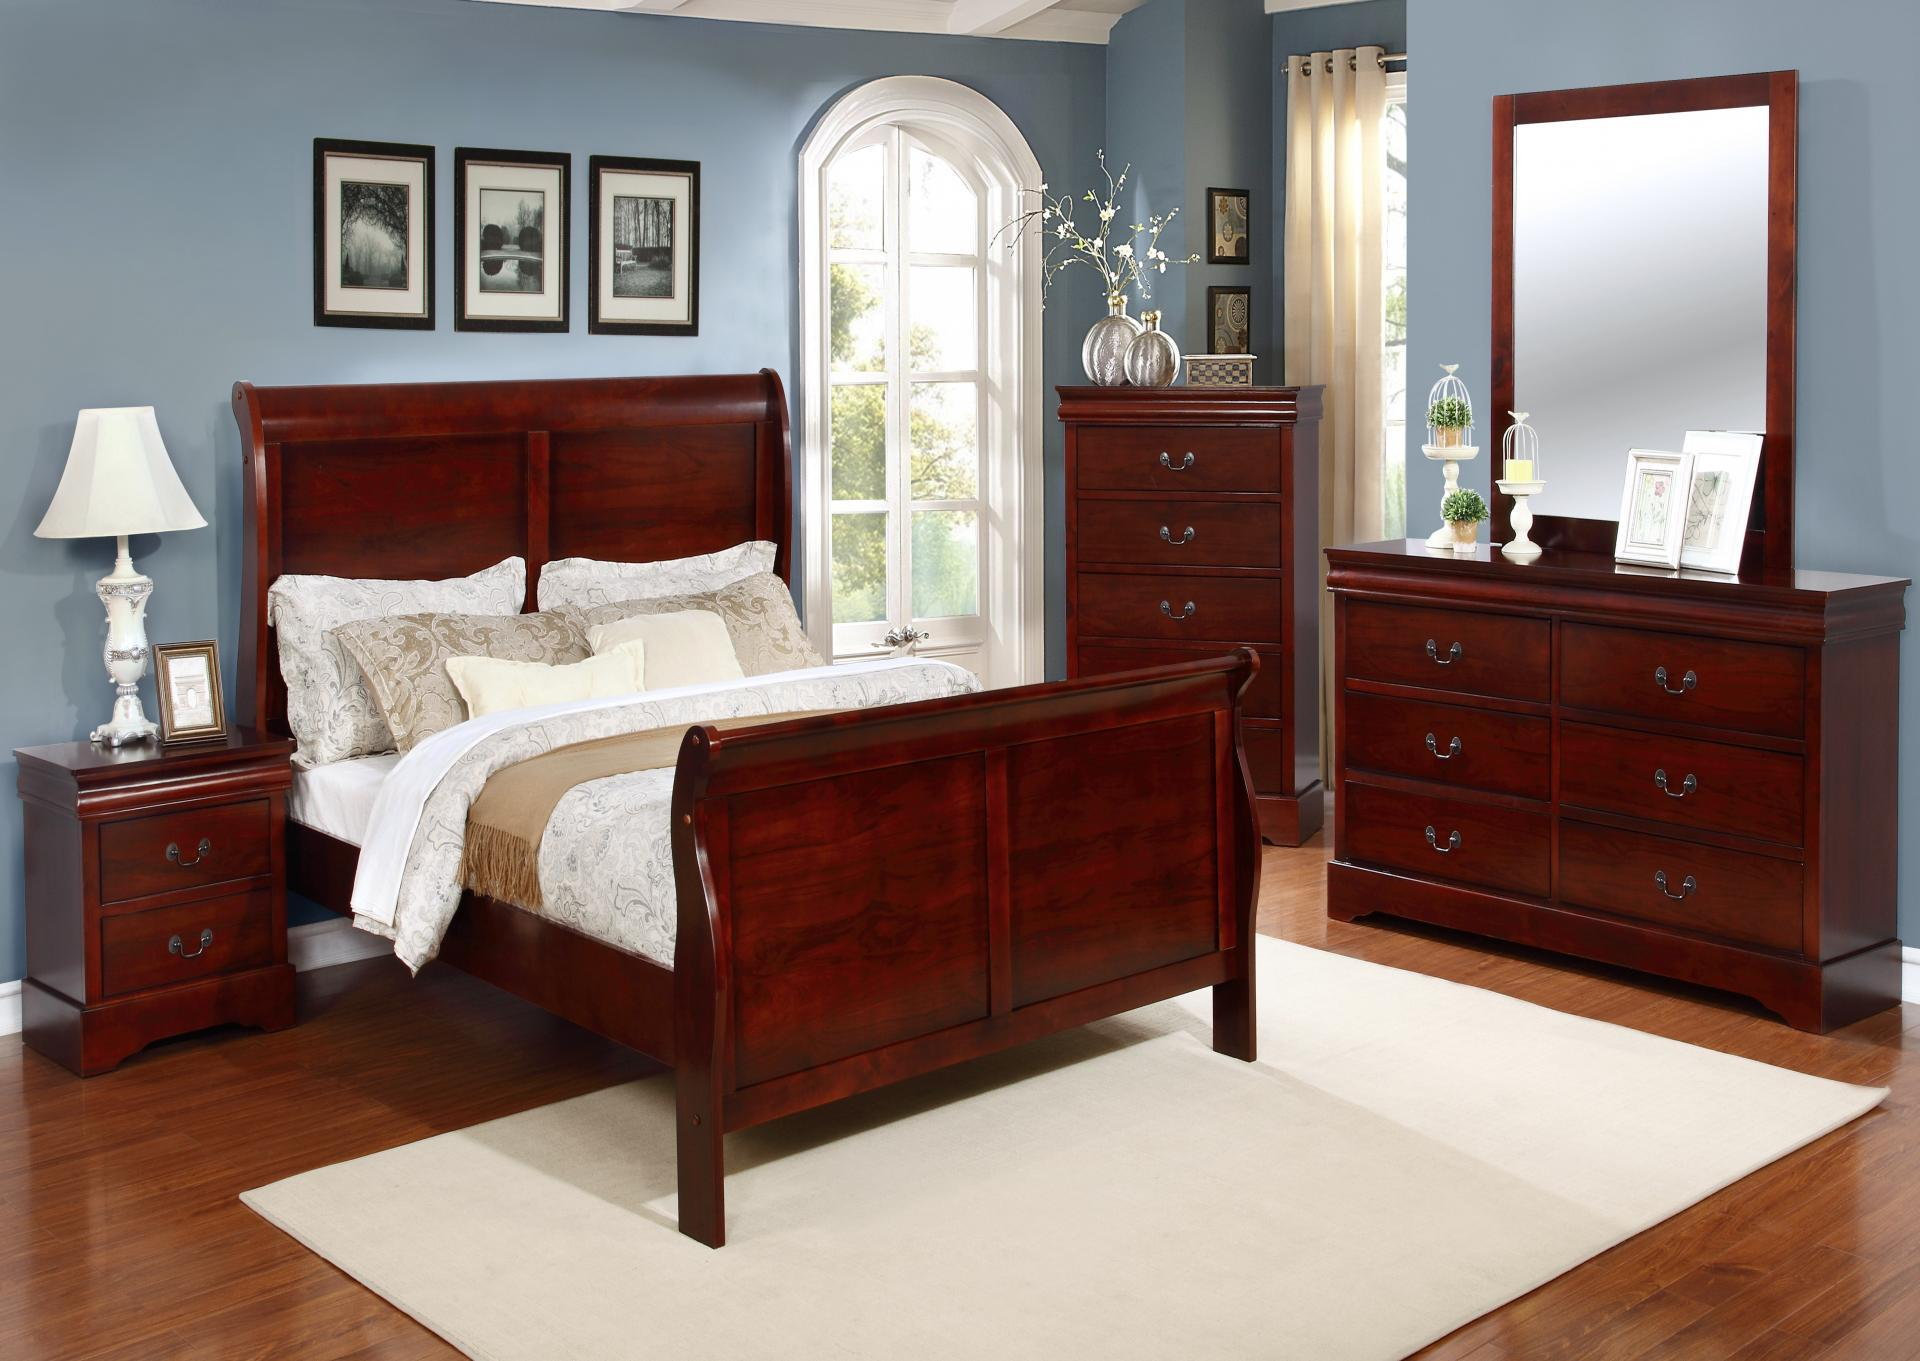 Cherry Sleigh Bed Set with Dresser, Mirror, and Nightstand